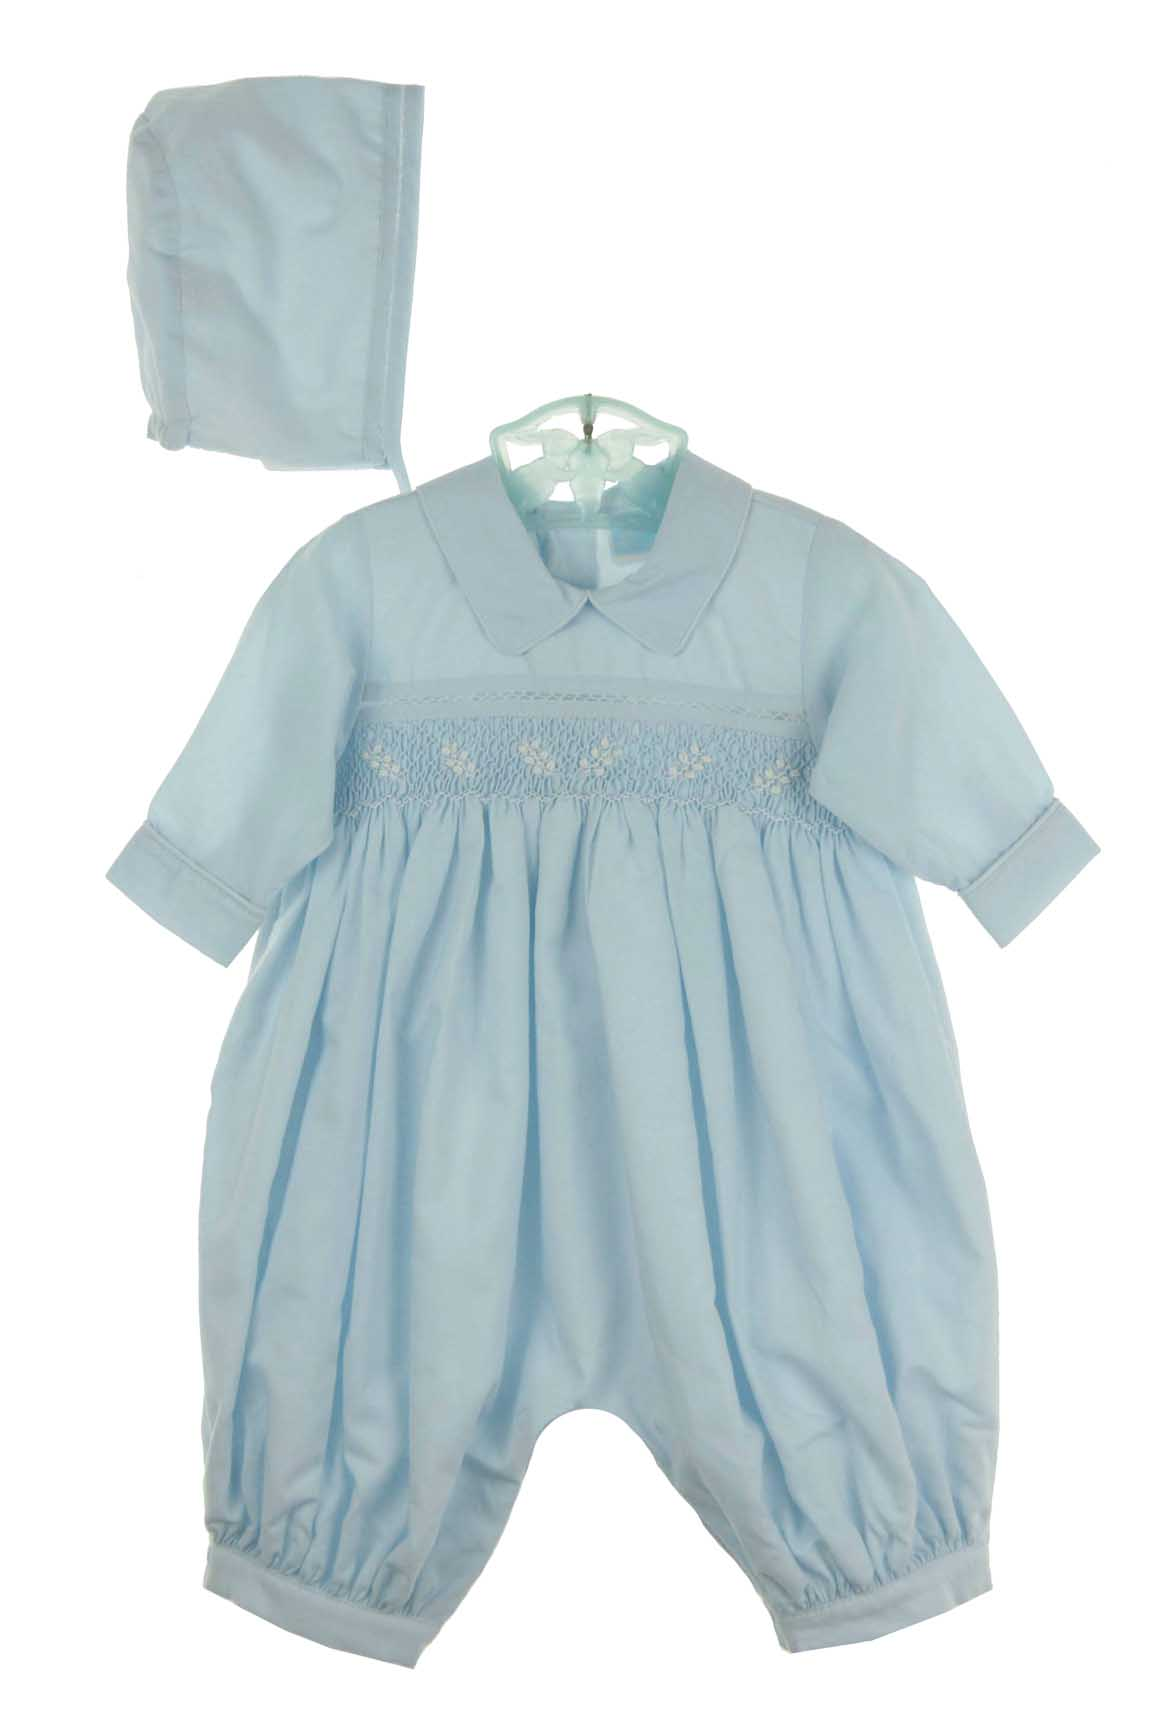 5ddbd6cf5f17 Will Beth blue cotton smocked romper with matching hat